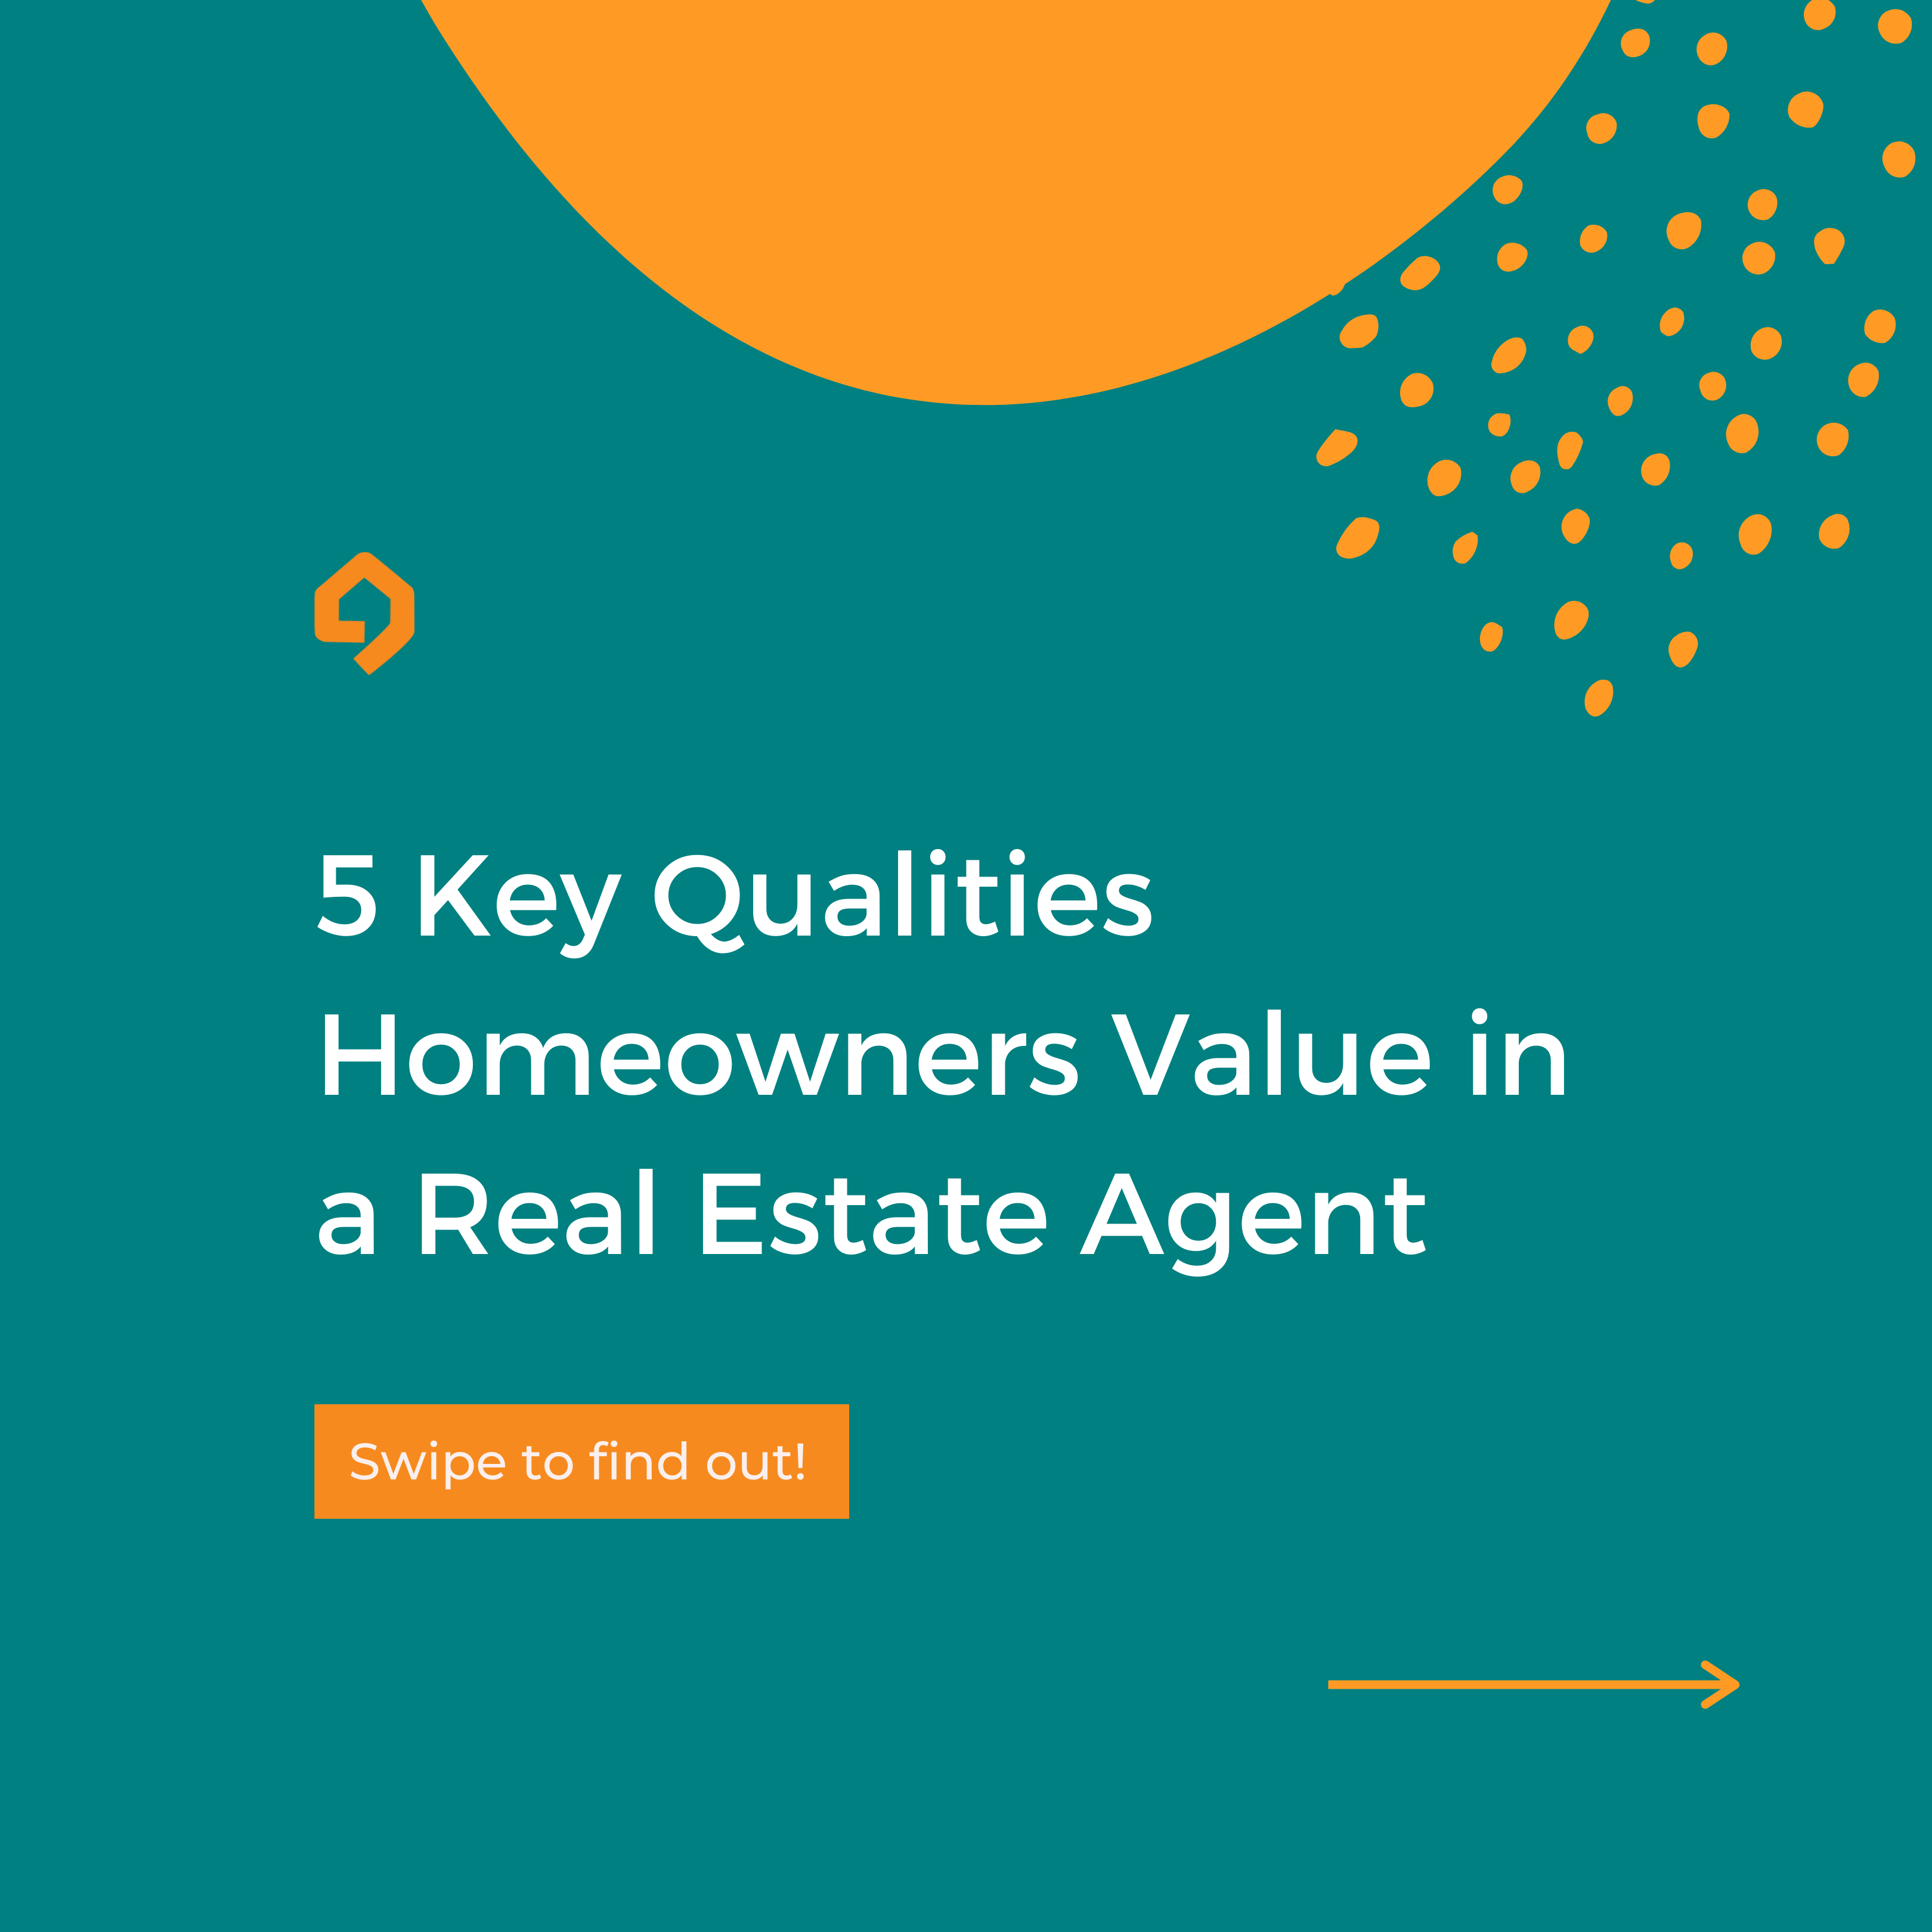 5 Key Qualities Homeowners Value in a Real Estate Agent